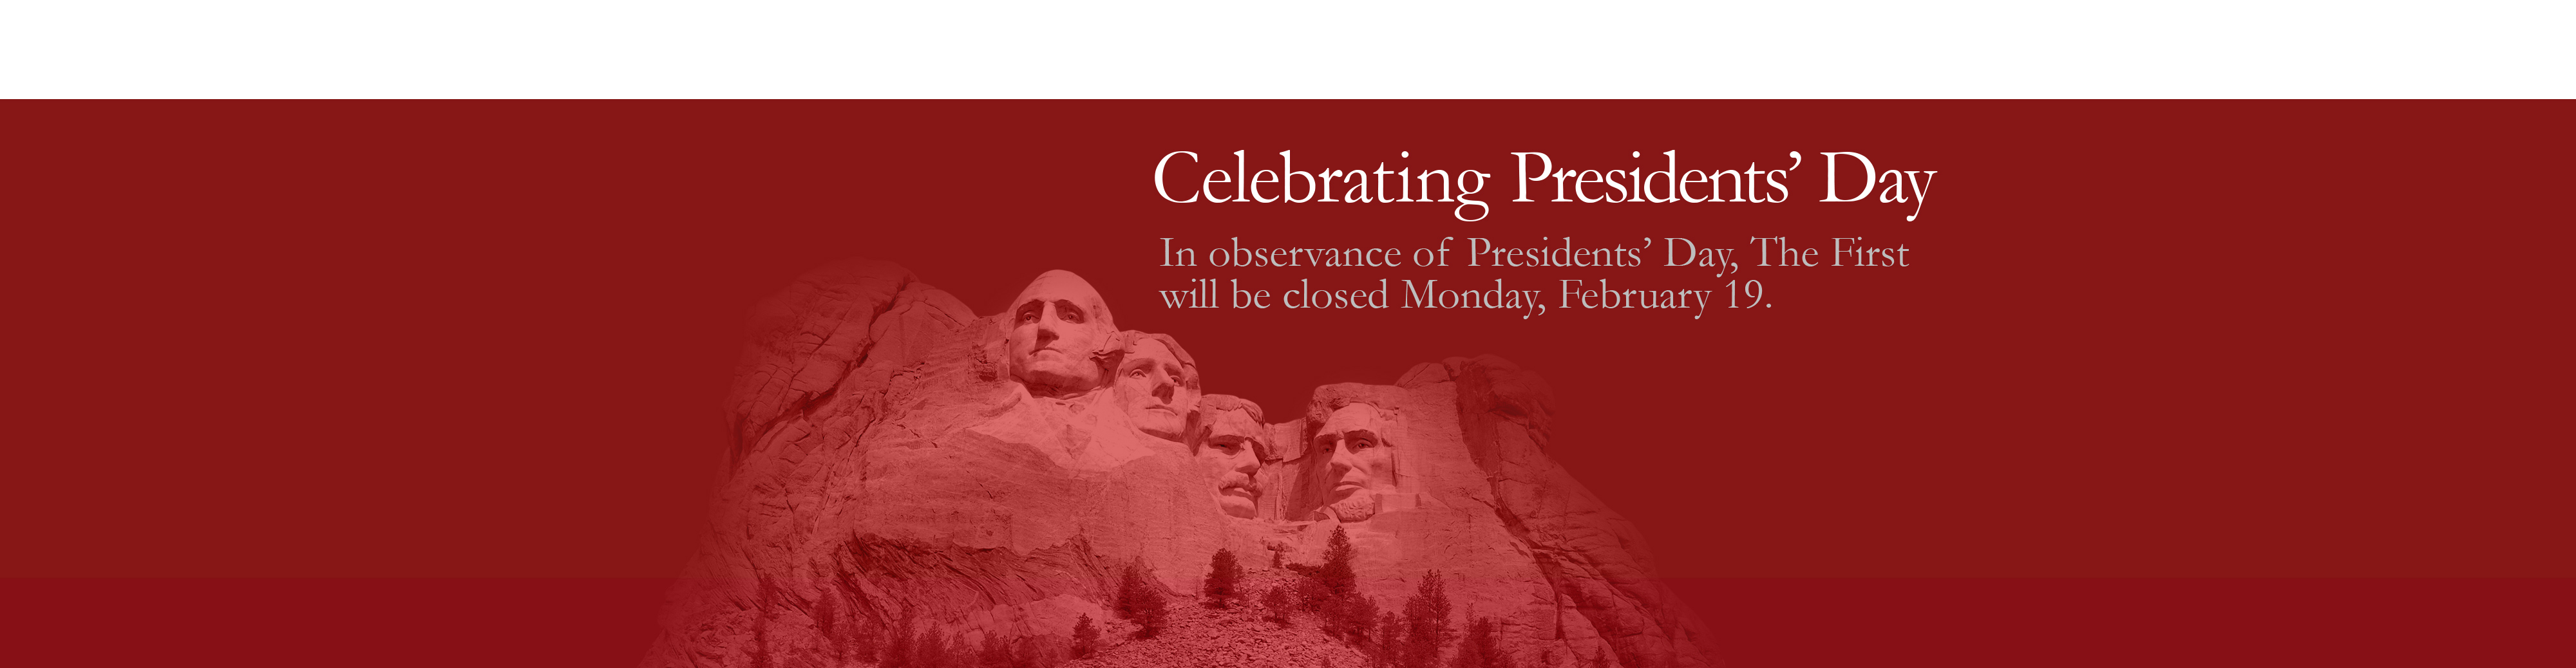 Celebrating Presidents' Day. In observance of Presidents' Day, The First will be closed Monday, February 18.